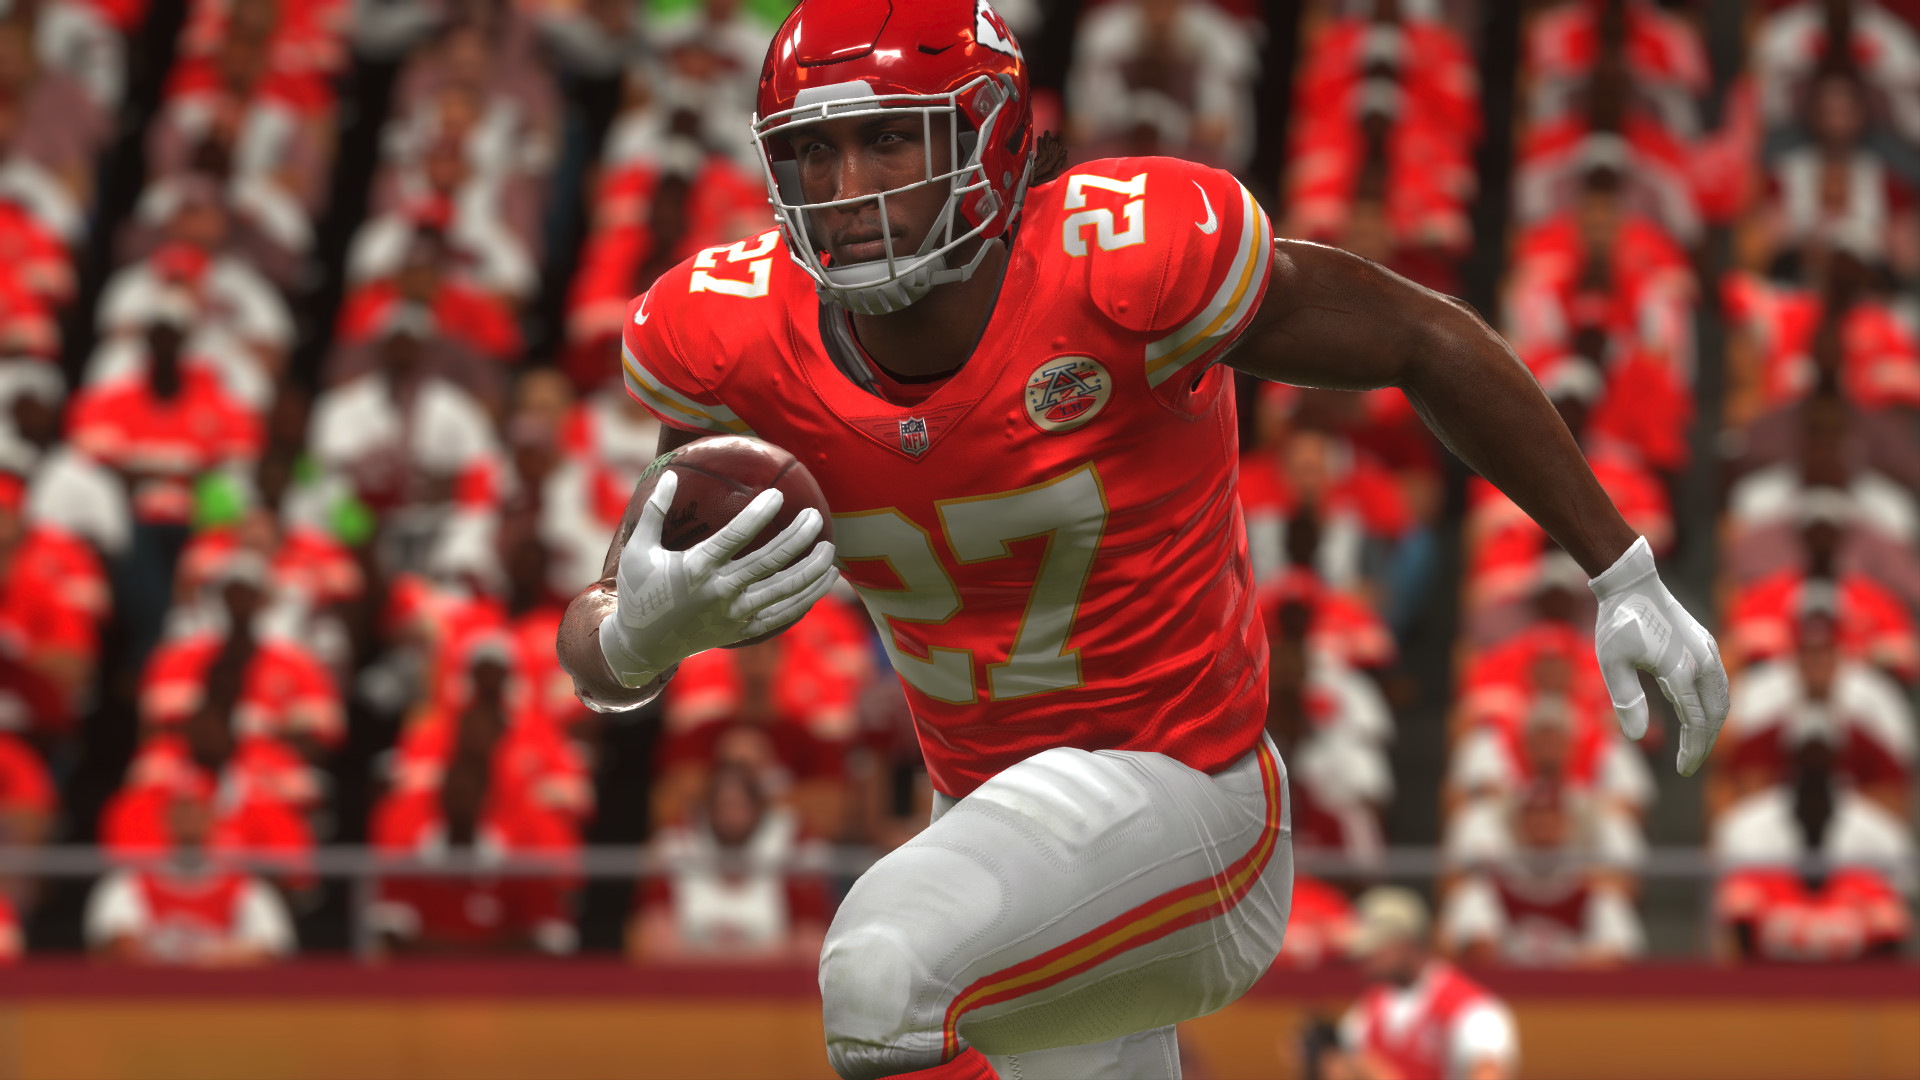 NFL star will be removed from Madden NFL 19